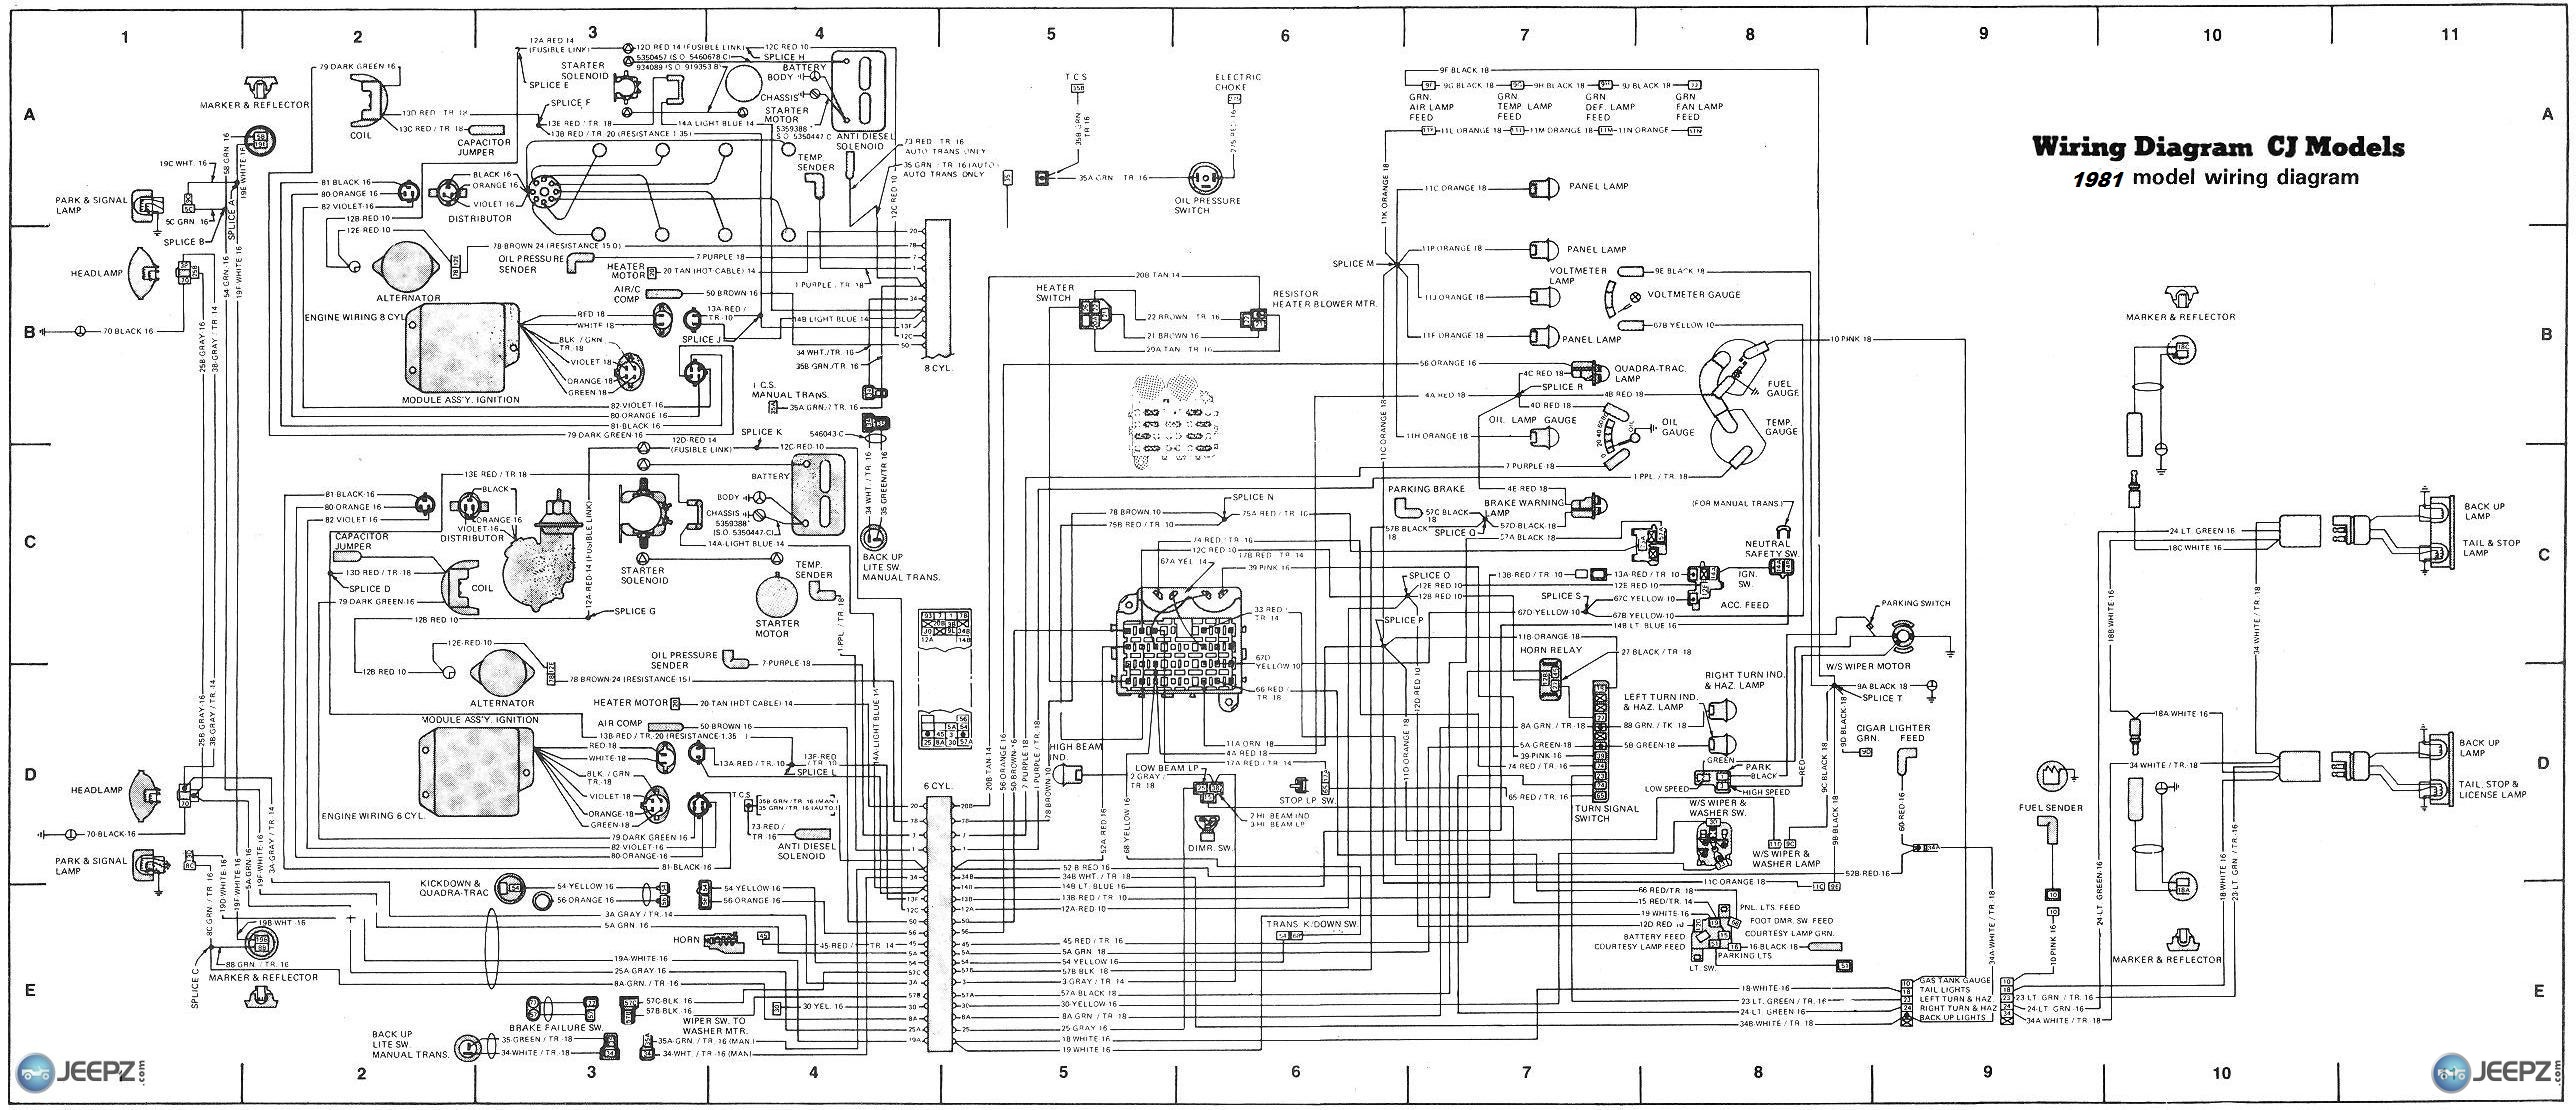 1981 jeep cj7 wiring diagram data wiring diagram turn signal and brake light wiring diagram 1976 [ 2576 x 1110 Pixel ]